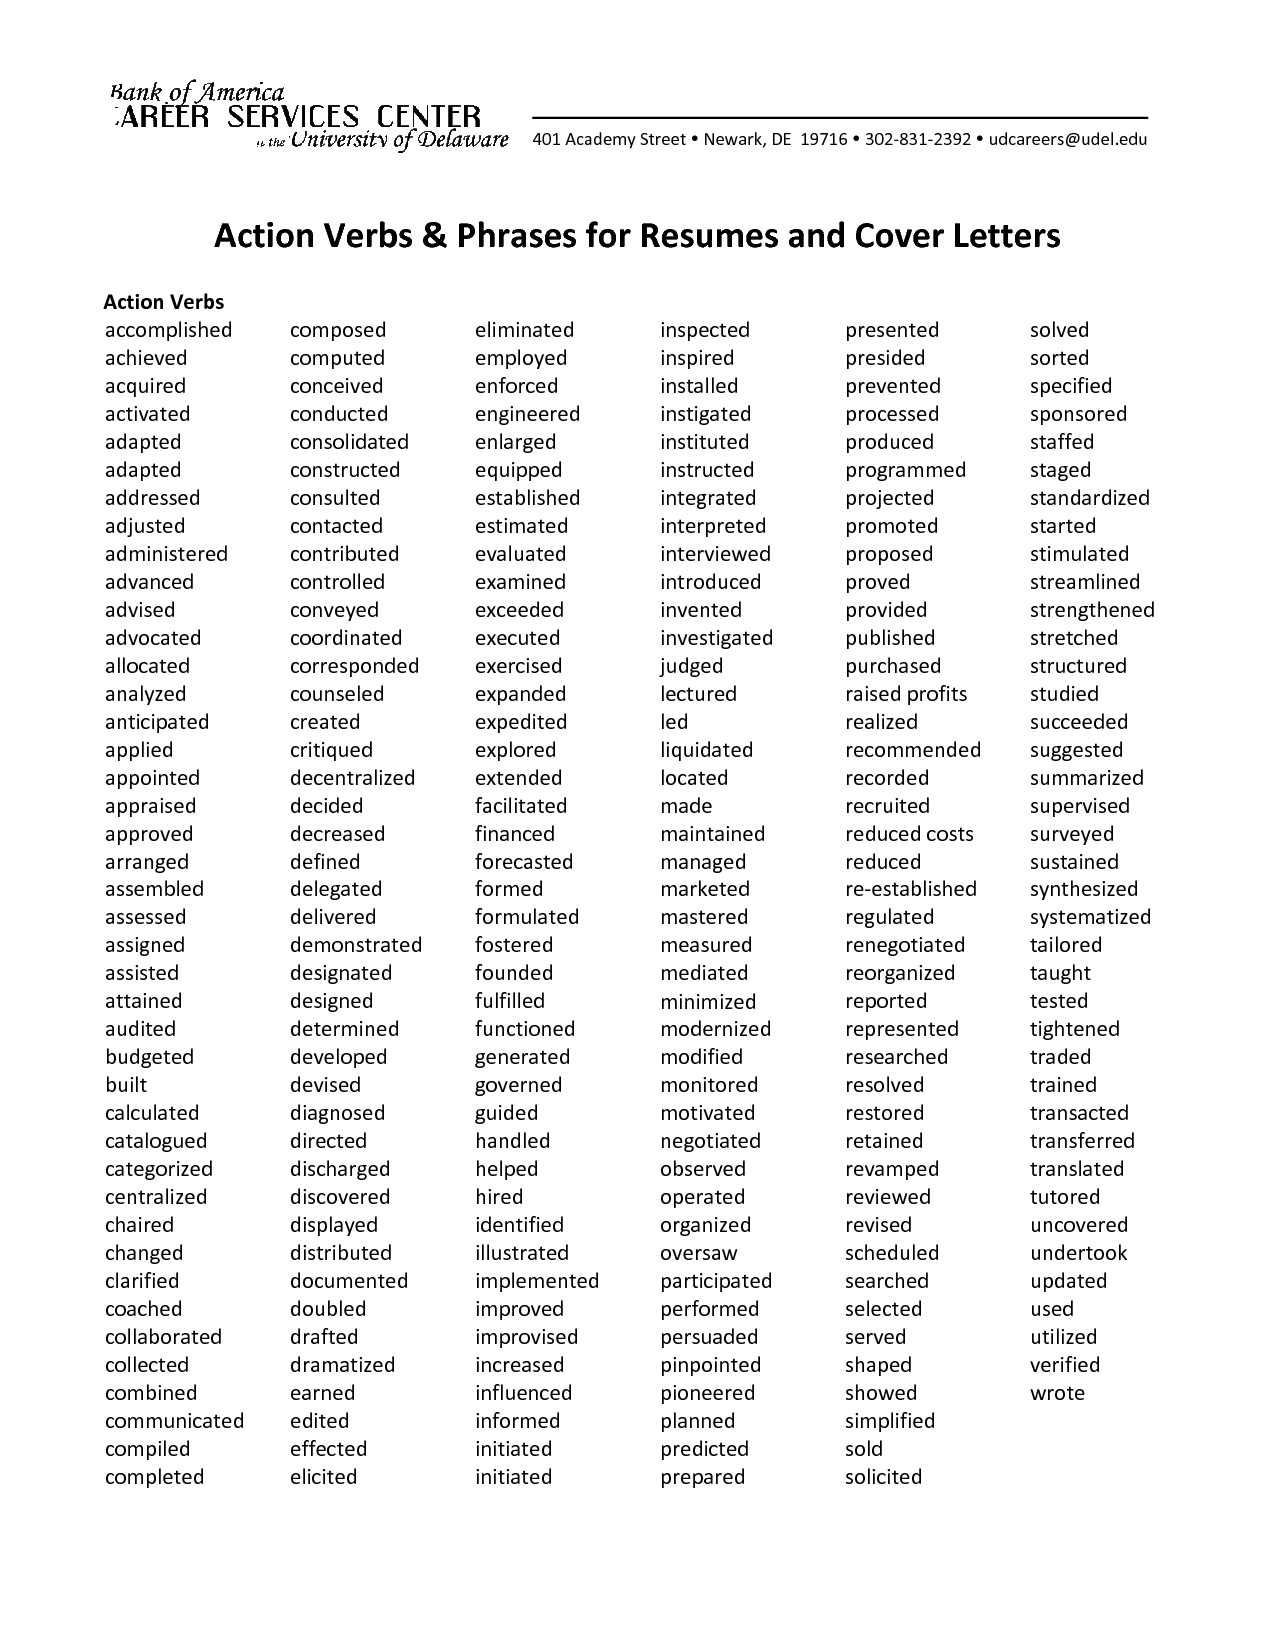 Action Verbs Phrases for Resumes and Cover Letters (With